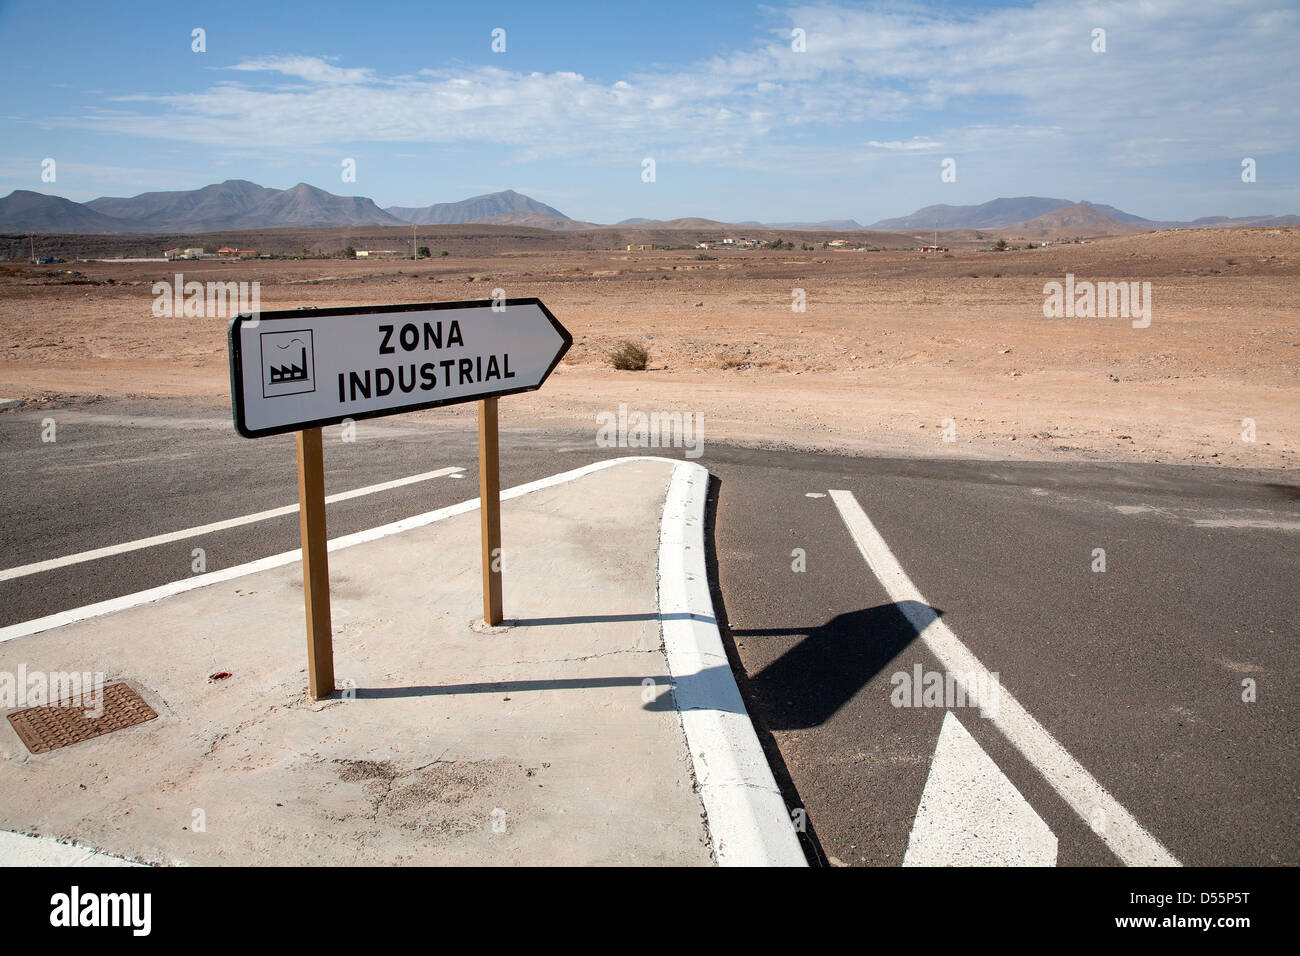 Gran Tarajal, Spain, a sign to an industrial area leads into the void - Stock Image